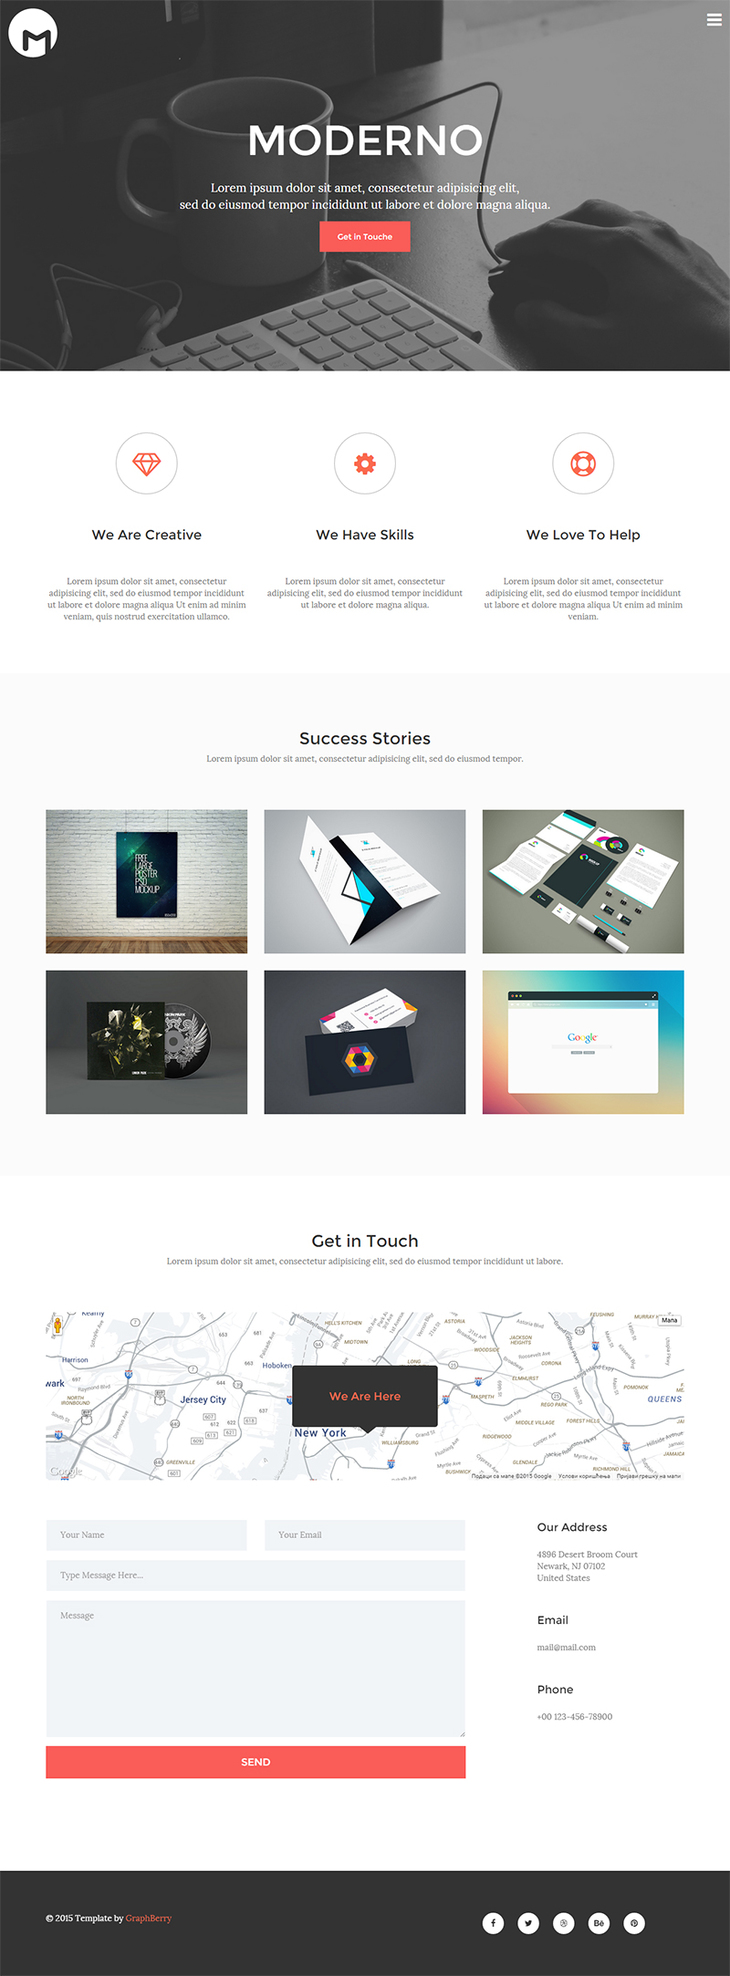 Moderno free html5 responsive template graphberry moderno free html5 responsive template preview maxwellsz